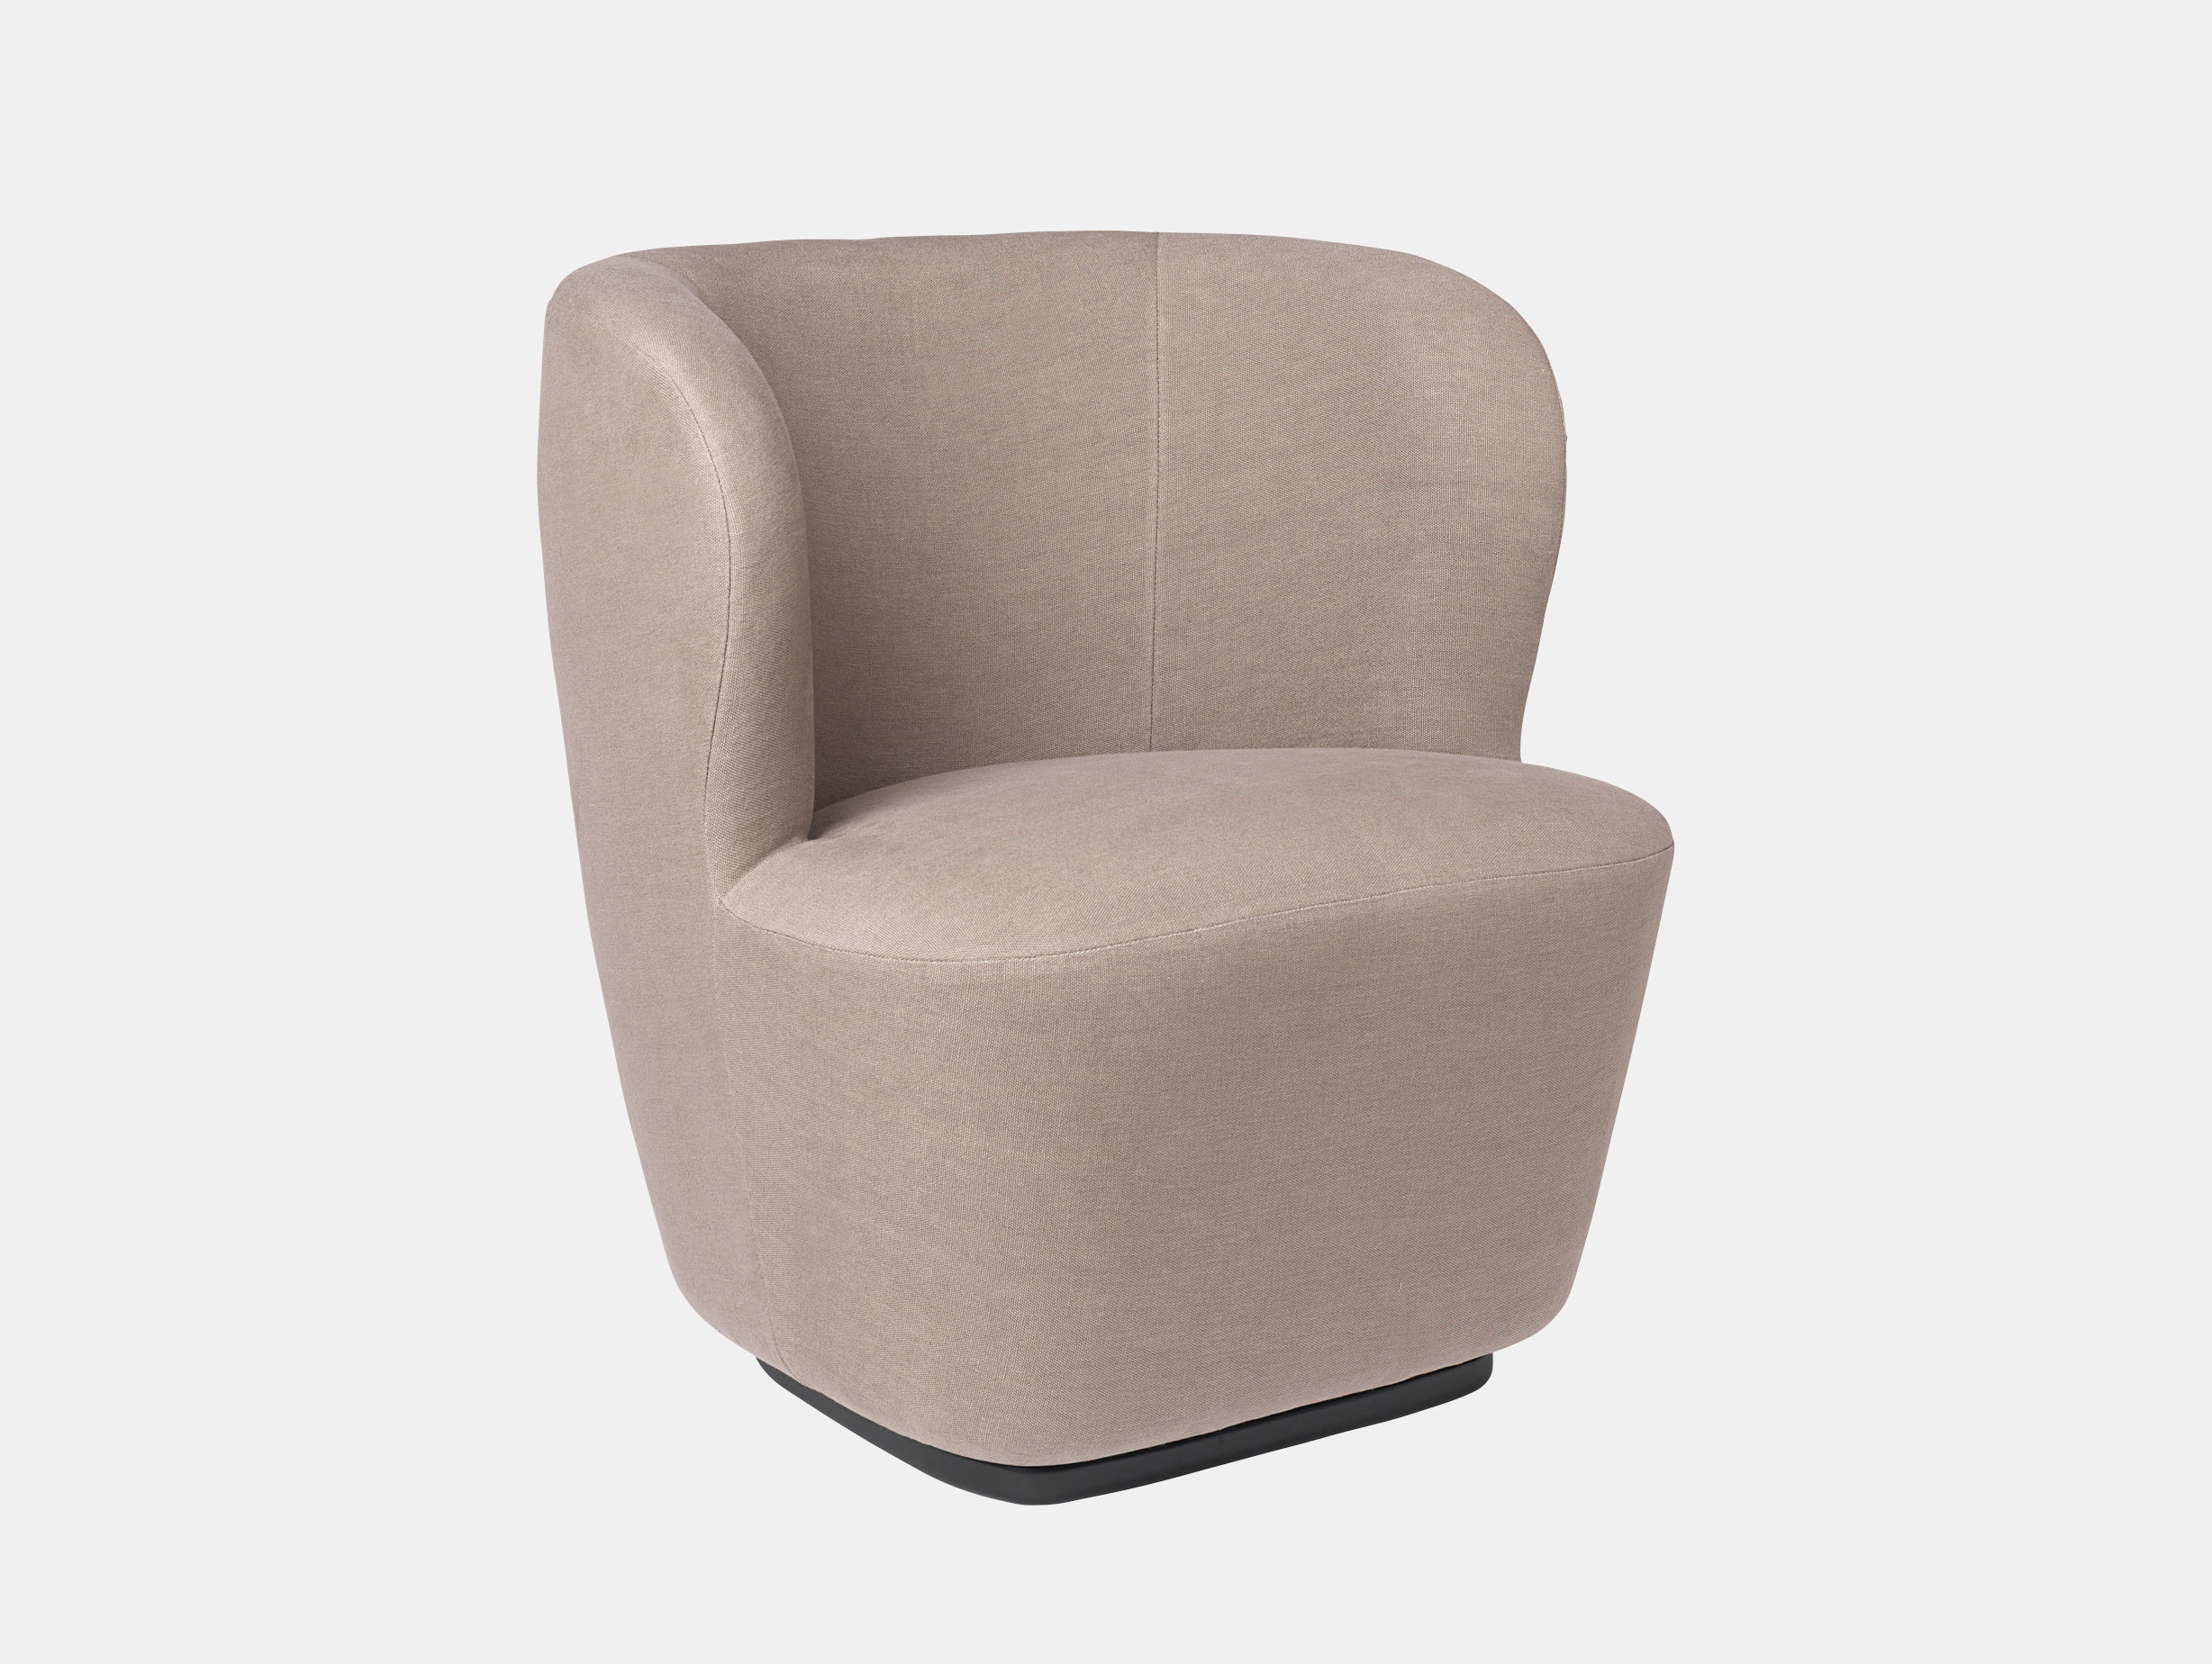 Gubi Stay Lounge Chair Bel Lino 77 Space Copenhagen